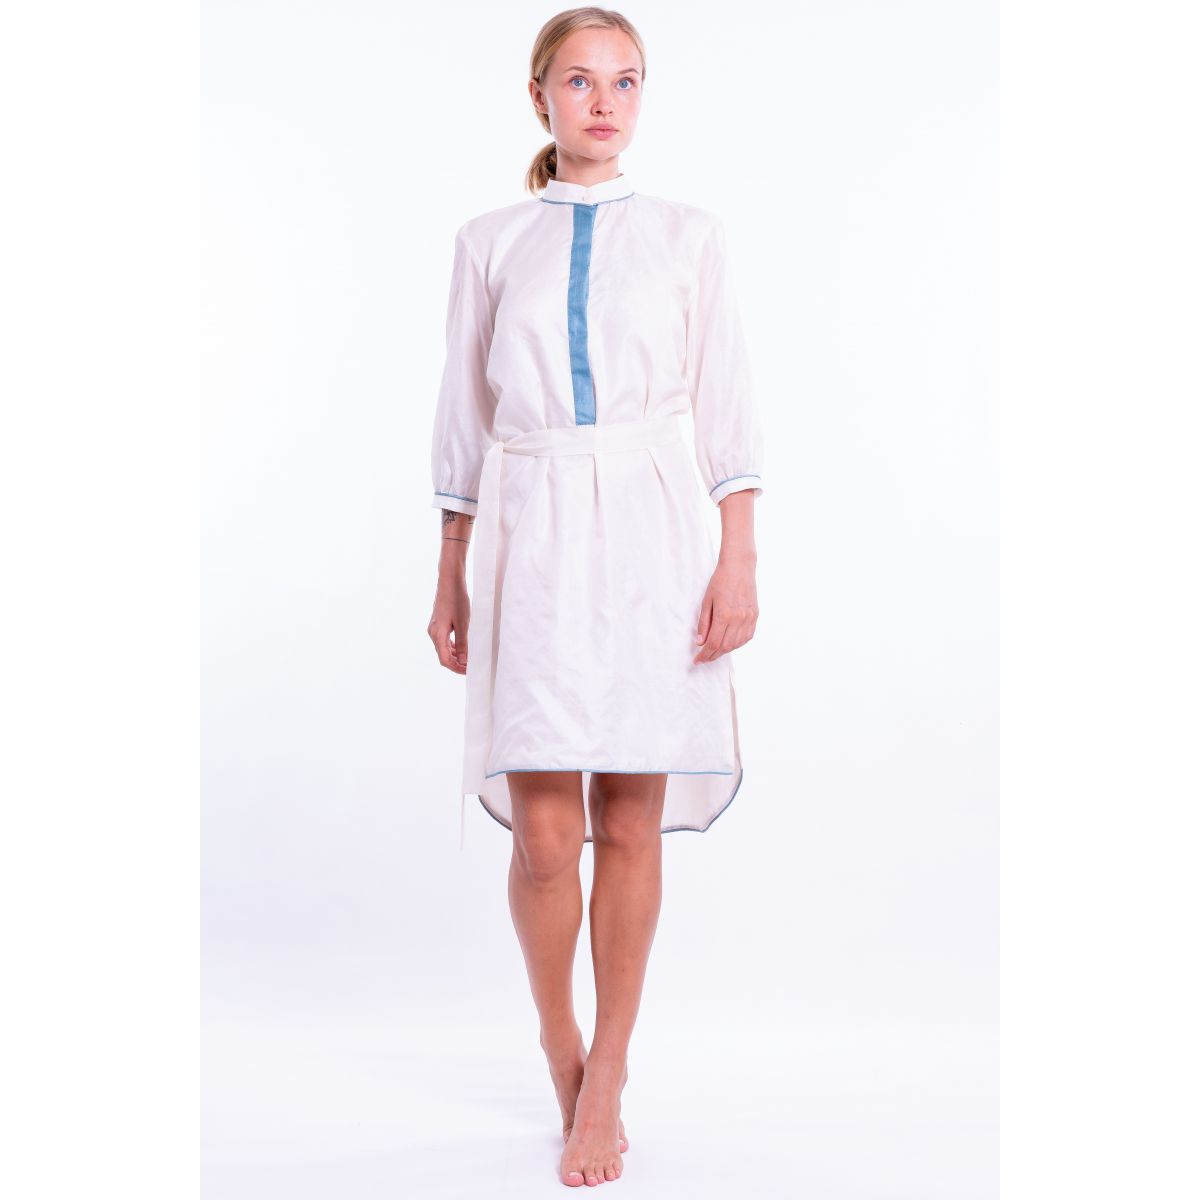 off white light dress in natural silk, Mao collar with contrasting blue edgings on the collar, sleeves and hem, separate belt